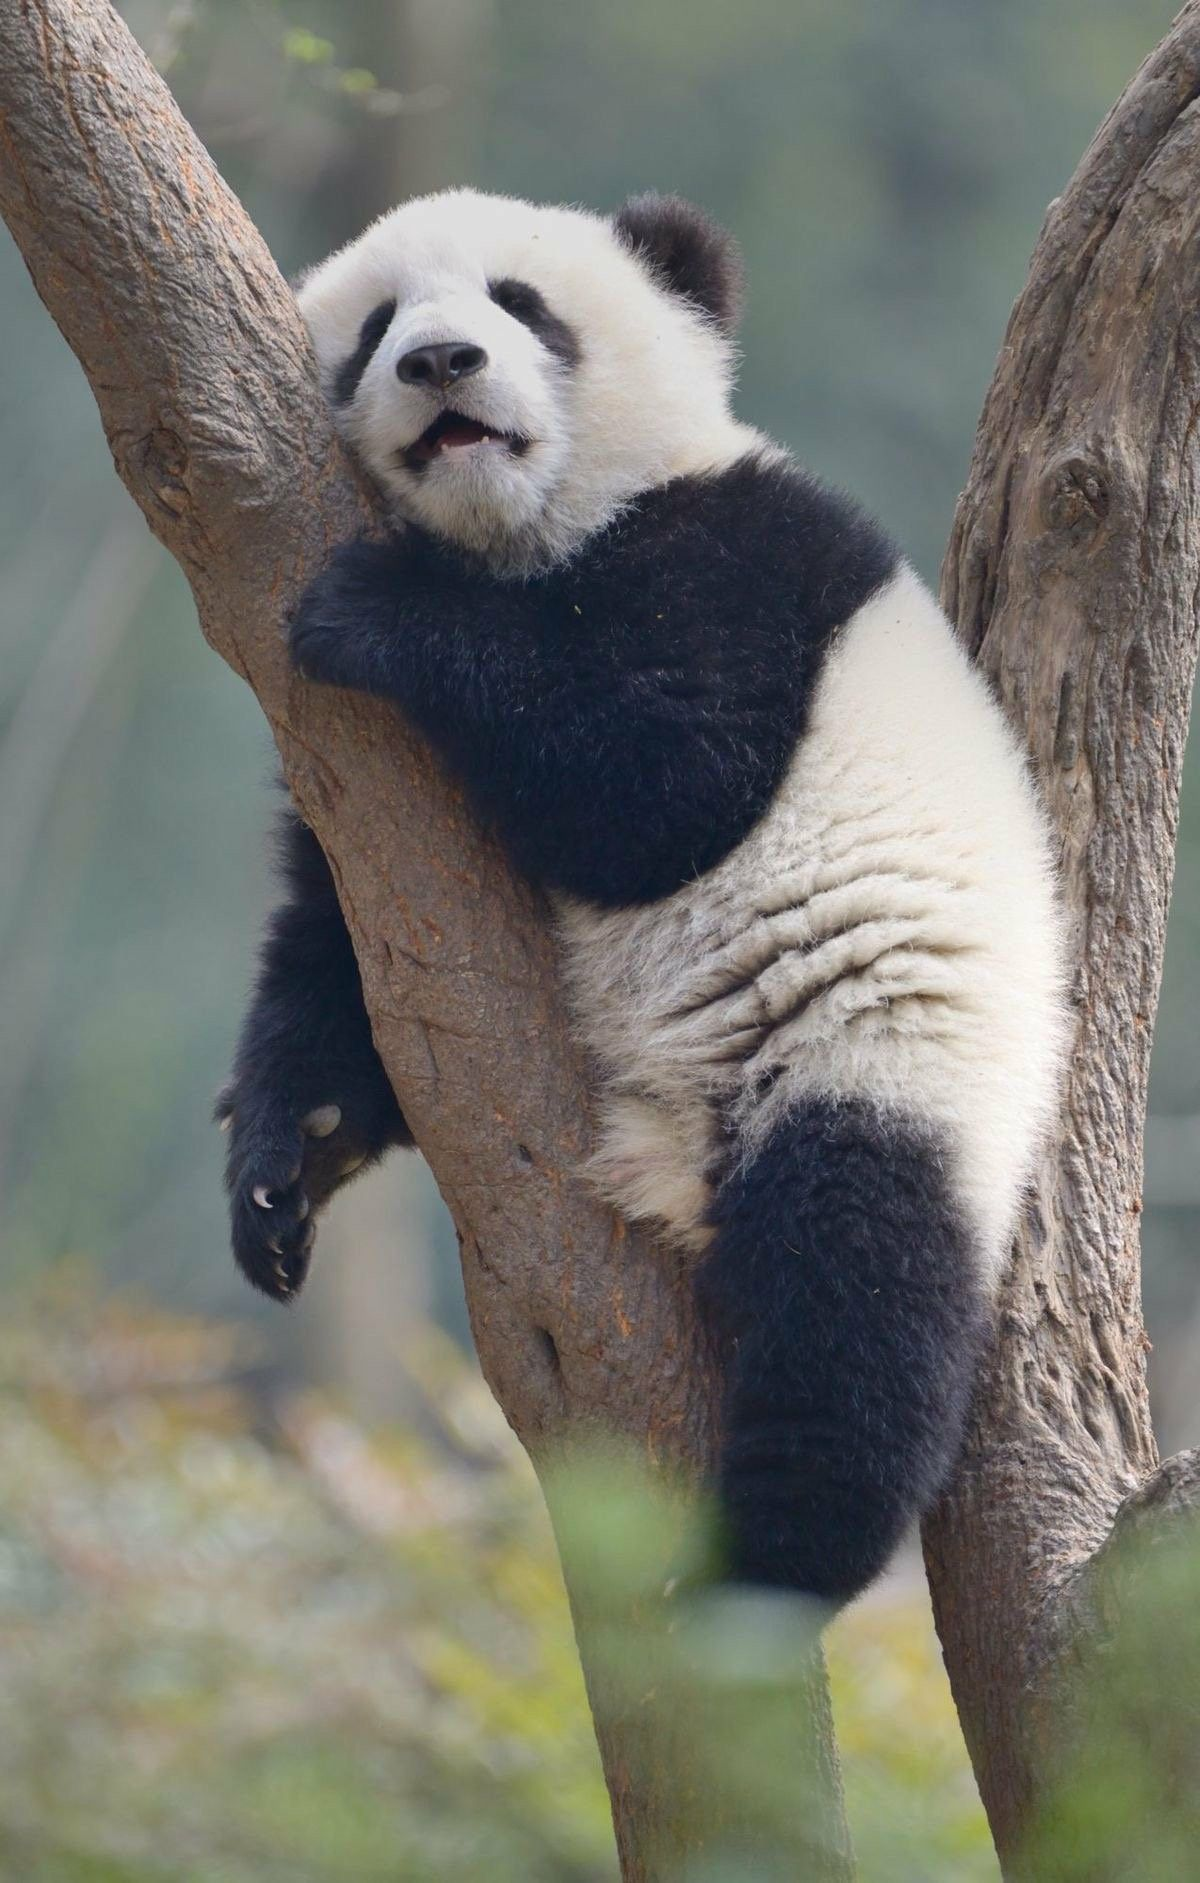 30 Funny Panda Pictures That Make Us Hassle | Cute Animals ...